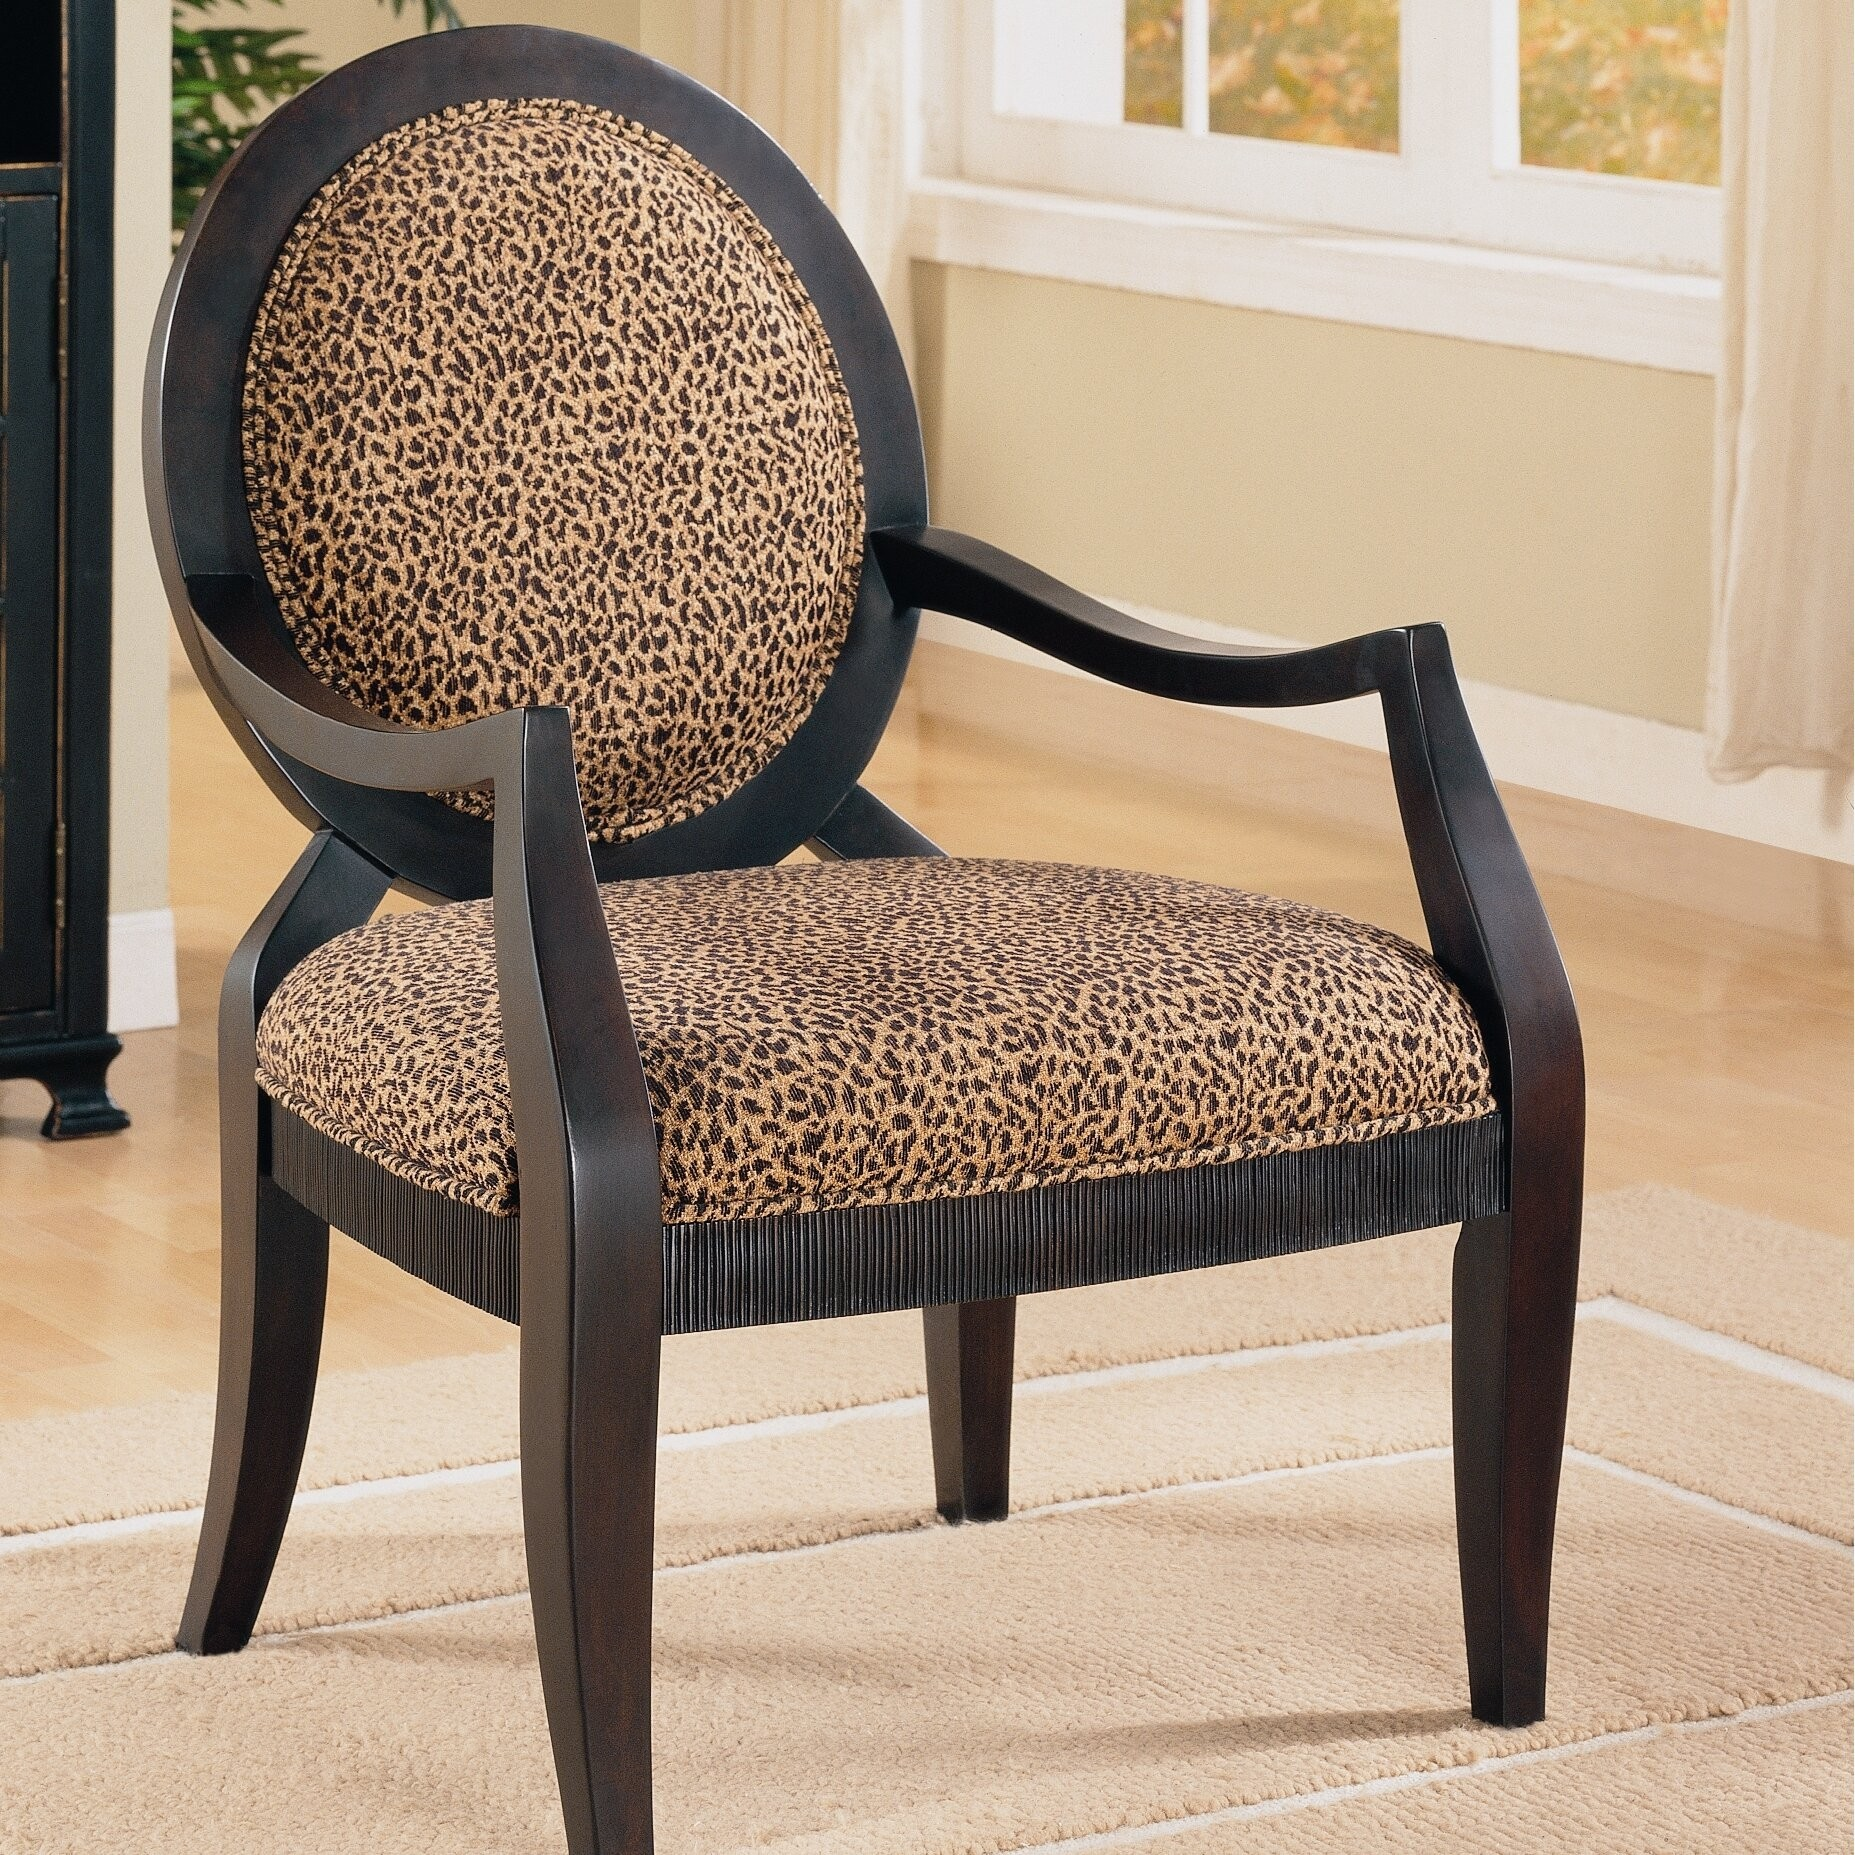 Grenoble Arm Chair Espresso Contemporary Wooden High Backed Armchairs Home  Furniture Decor Ideal For Living And